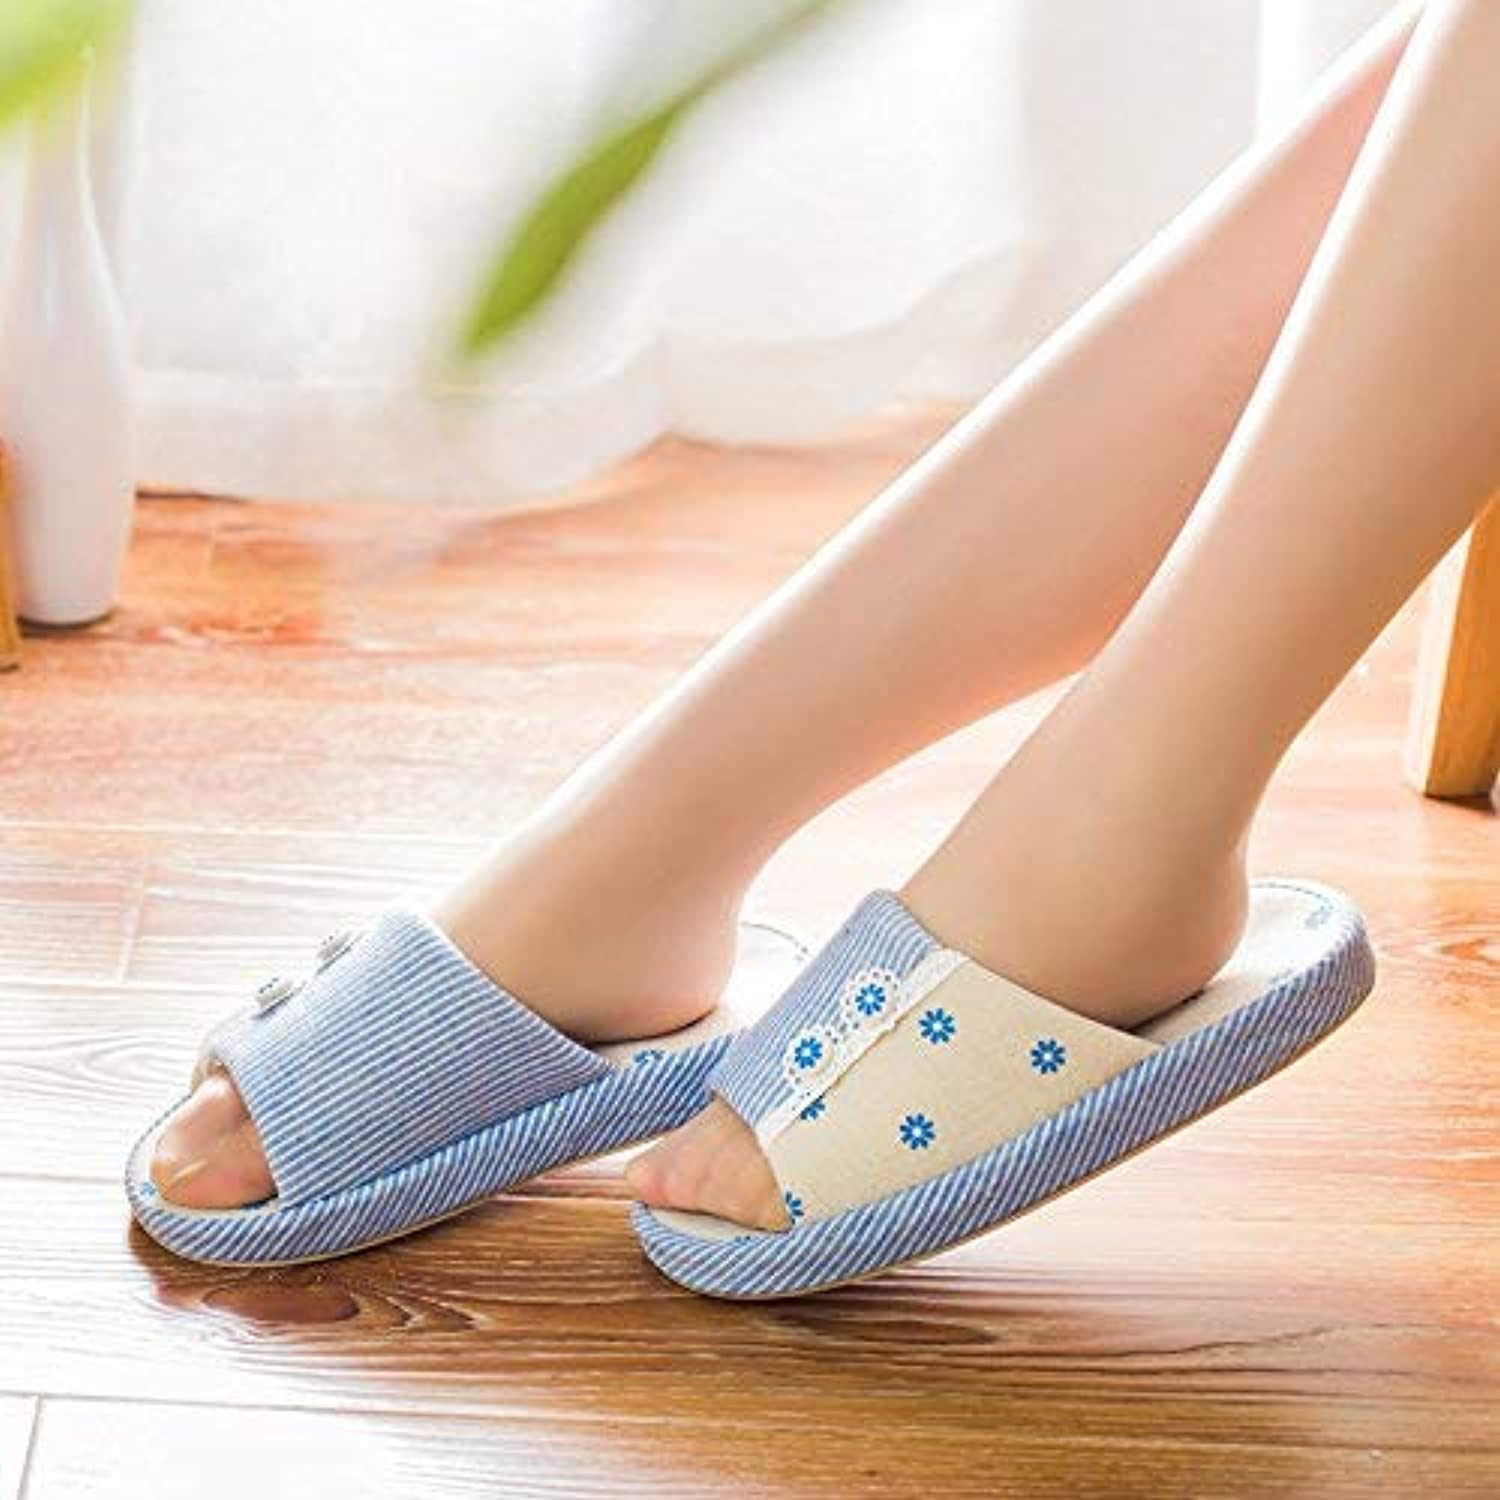 Lady Slippers Women 's Home Cotton Slippers Indoor Keep Warm Casual Slippers bluee Mixed color Personality Quality for Women Elegant